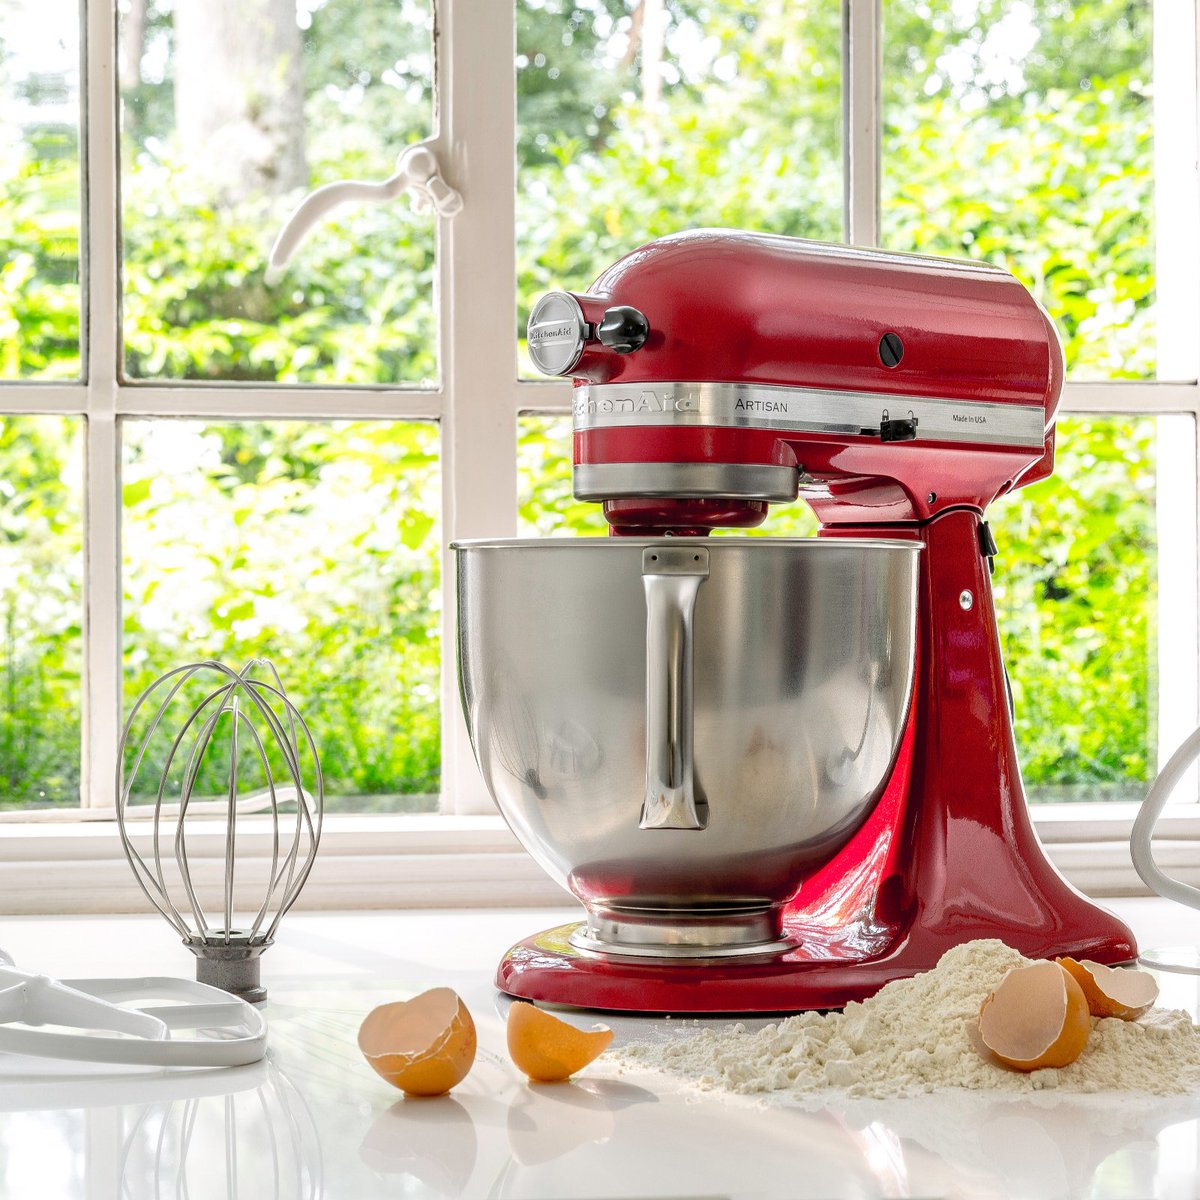 Qvc Uk On Twitter Save Over 169 With Today S Special Value Kitchenaid 125 Artisan 4 8l Stand Mixer And Spread The Cost In Interest Free Monthly Instalments Https T Co Zyact1mkca Https T Co 2apiq0dcdo